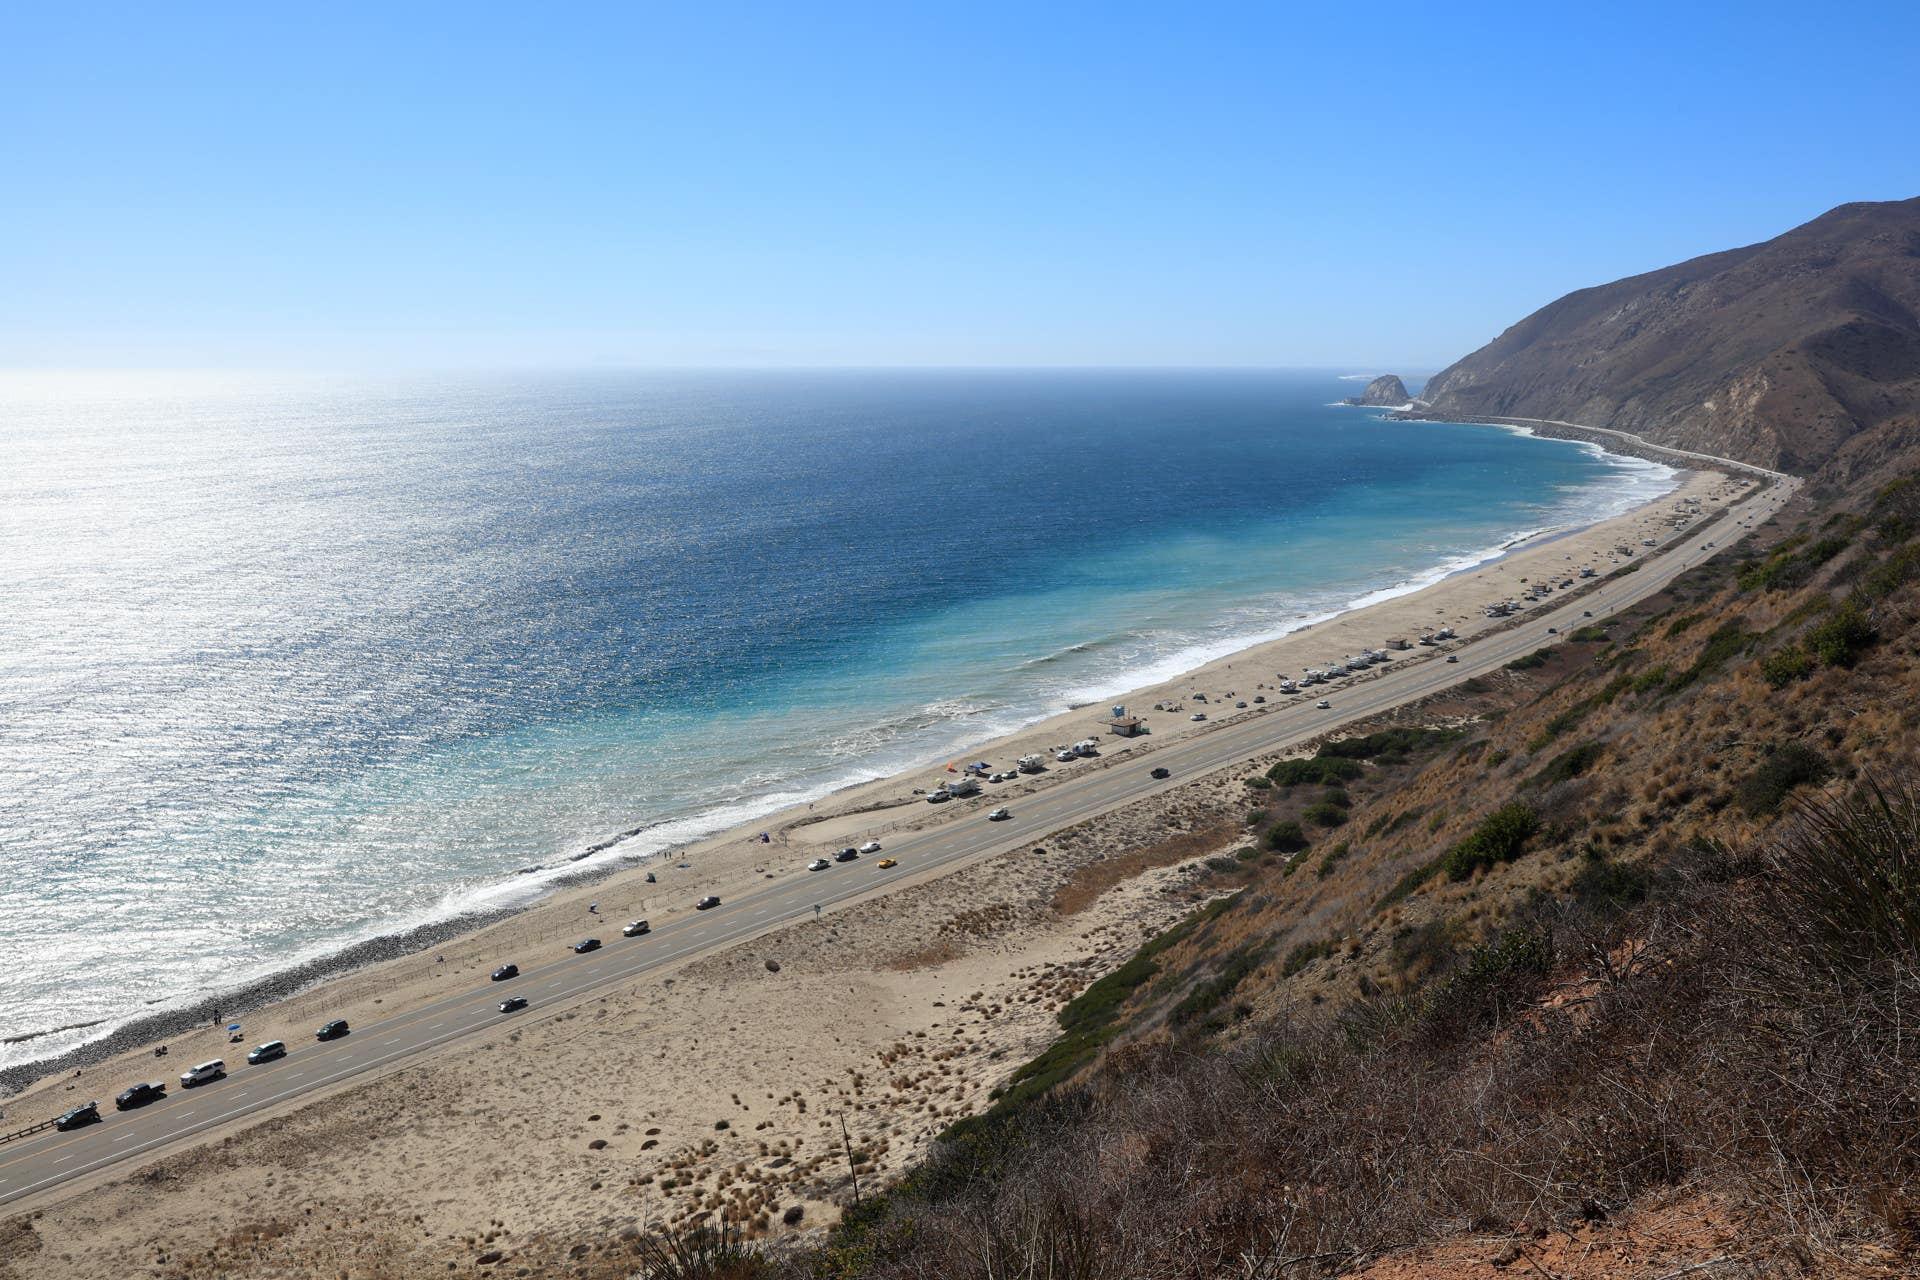 View of PCH from Point Mugu State Park in Malibu